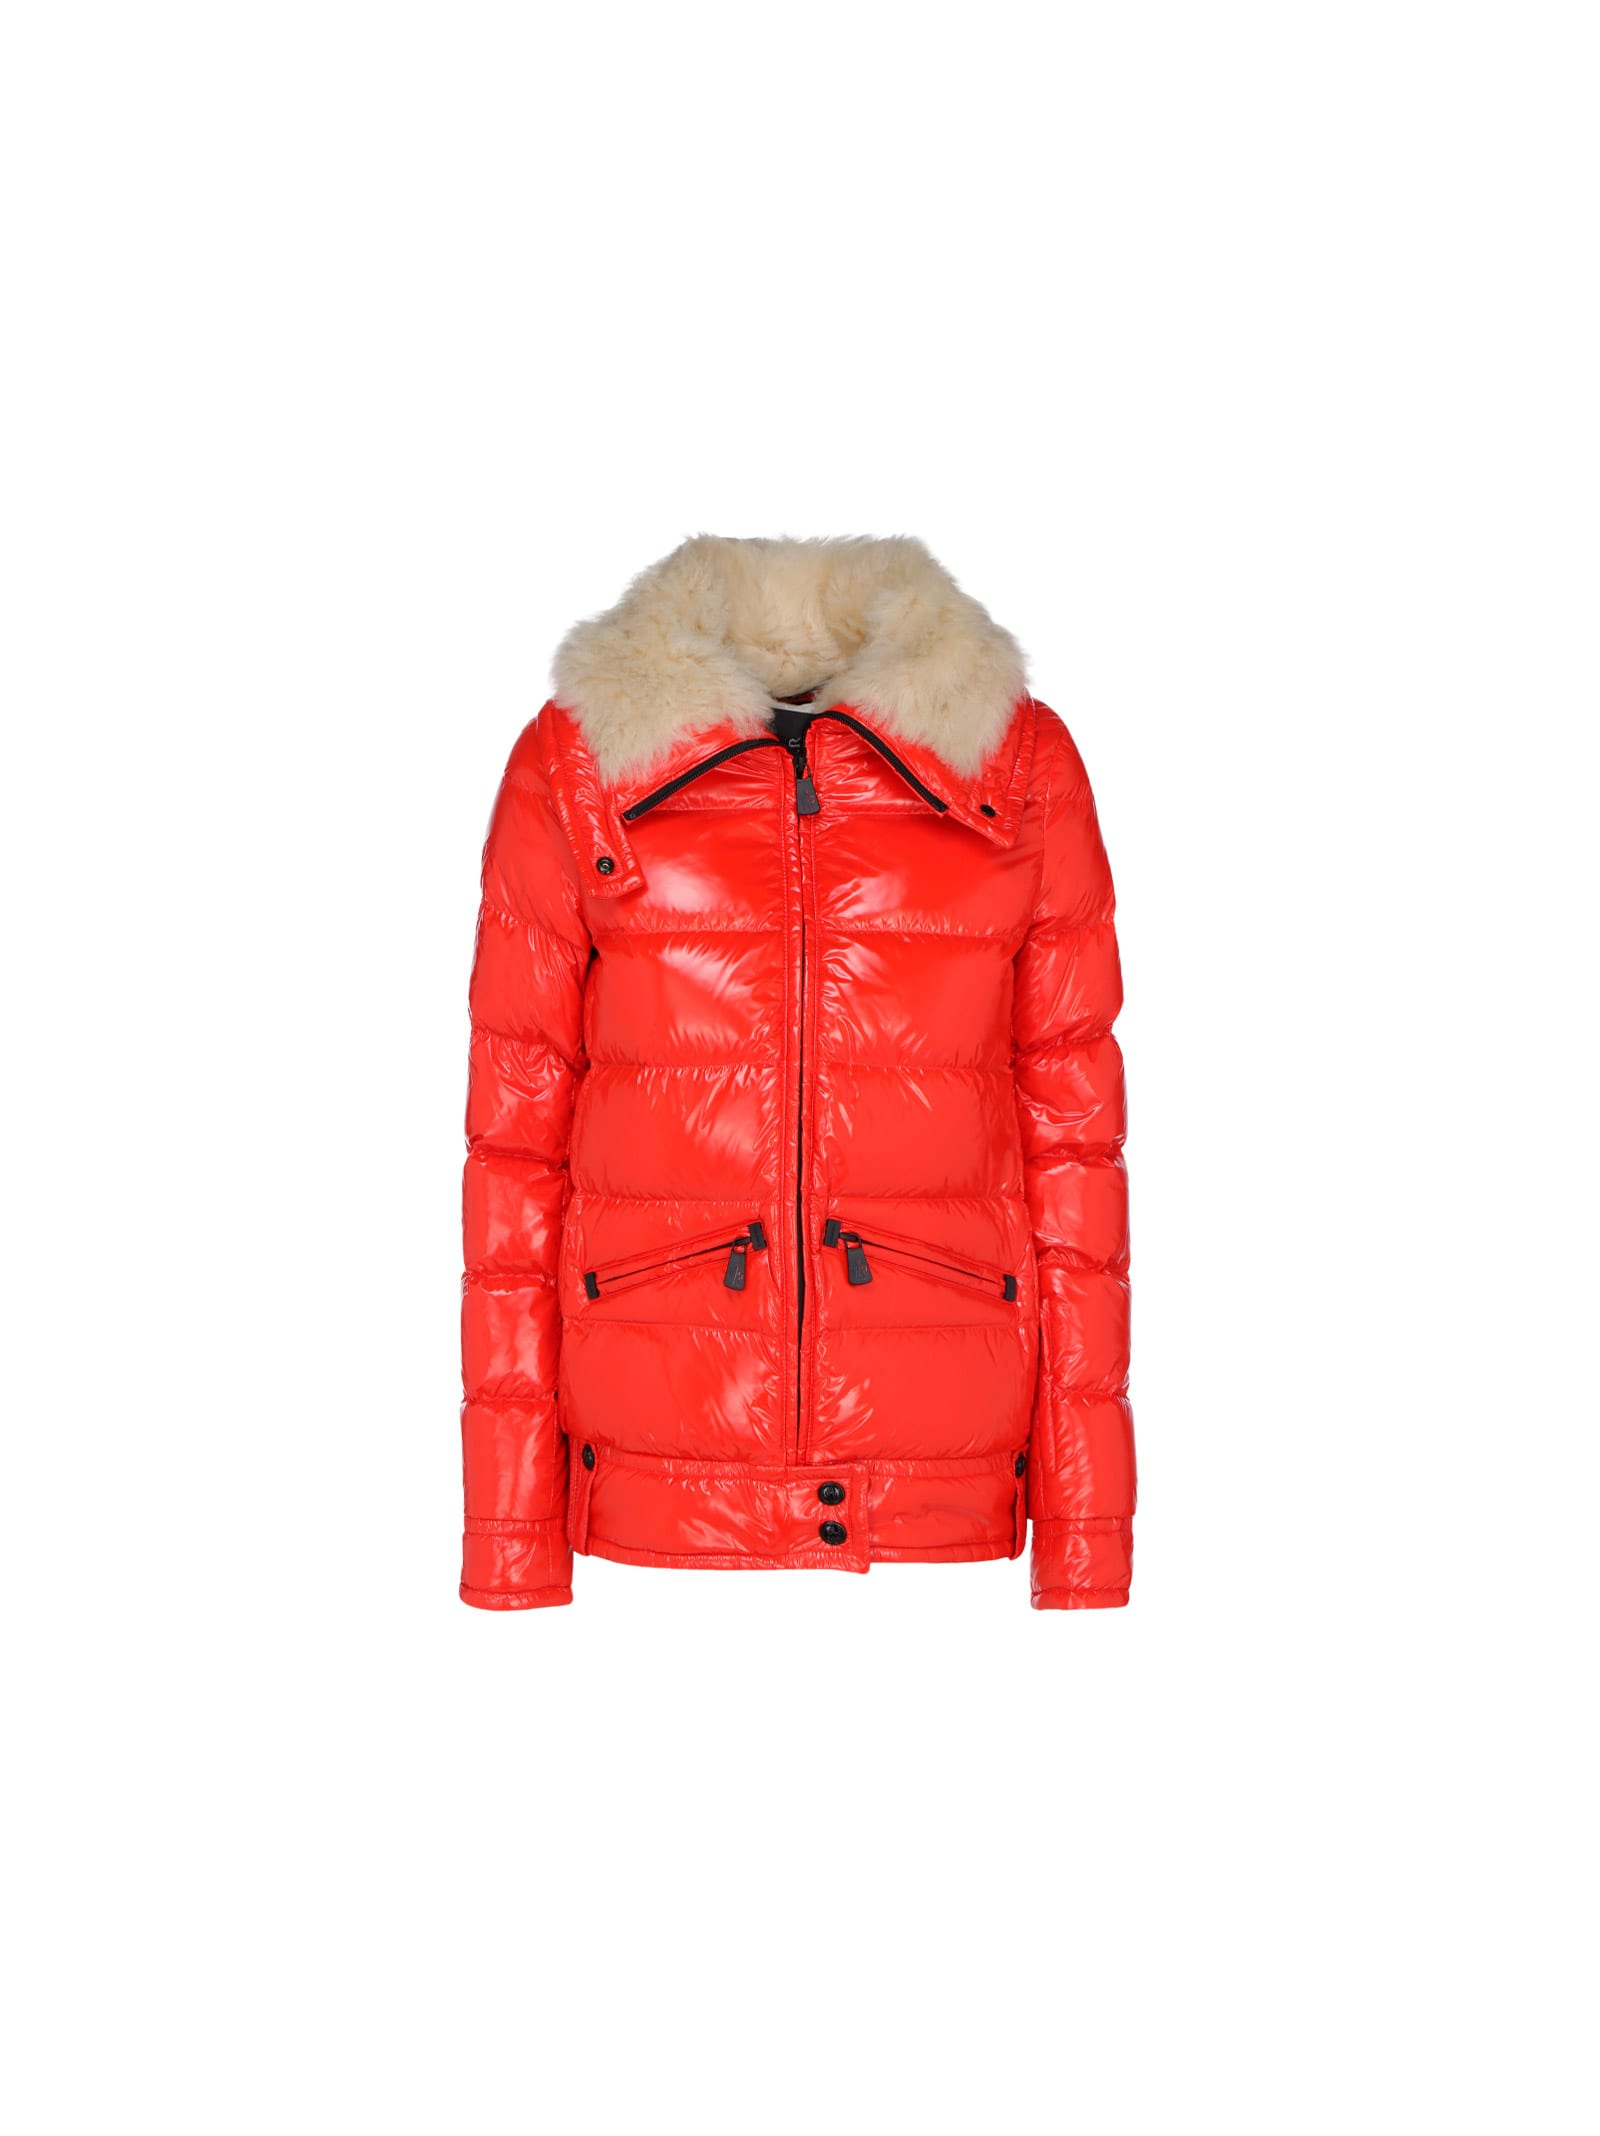 Moncler Grenoble MONCLER ARABBA DOWN JACKET